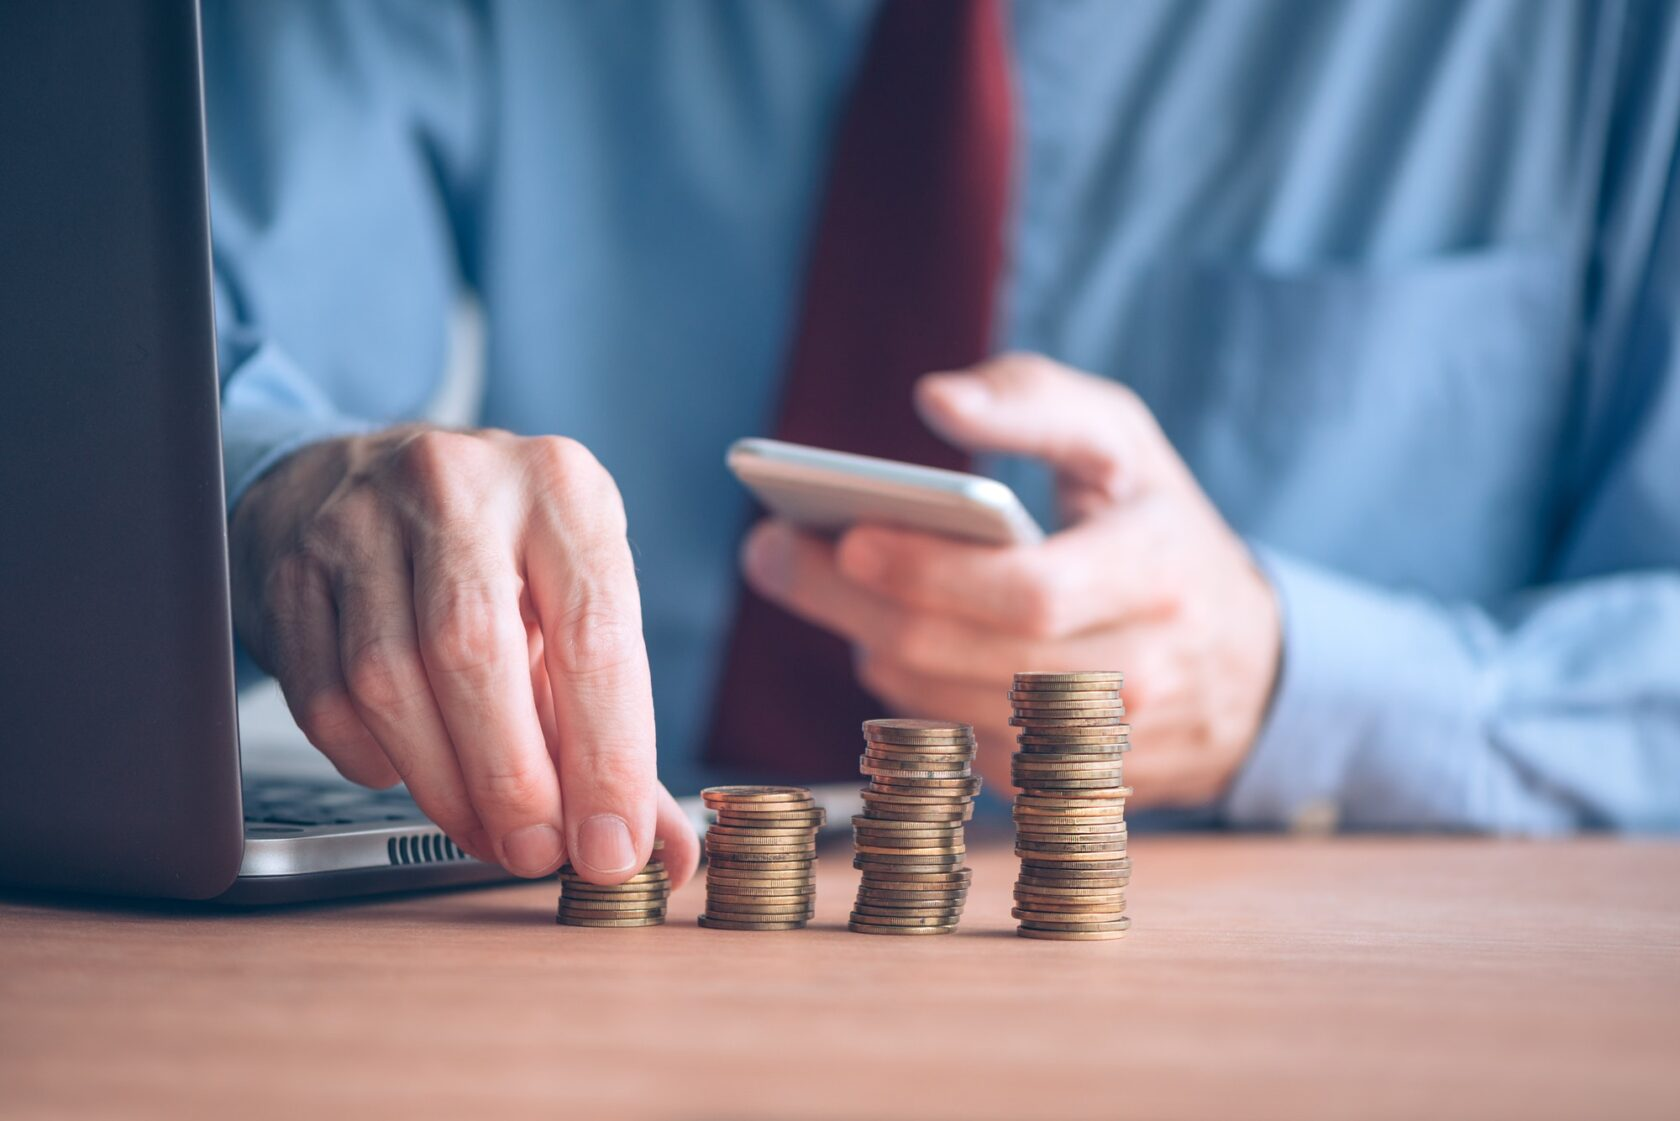 Finances and budgeting, businessman stacking coins